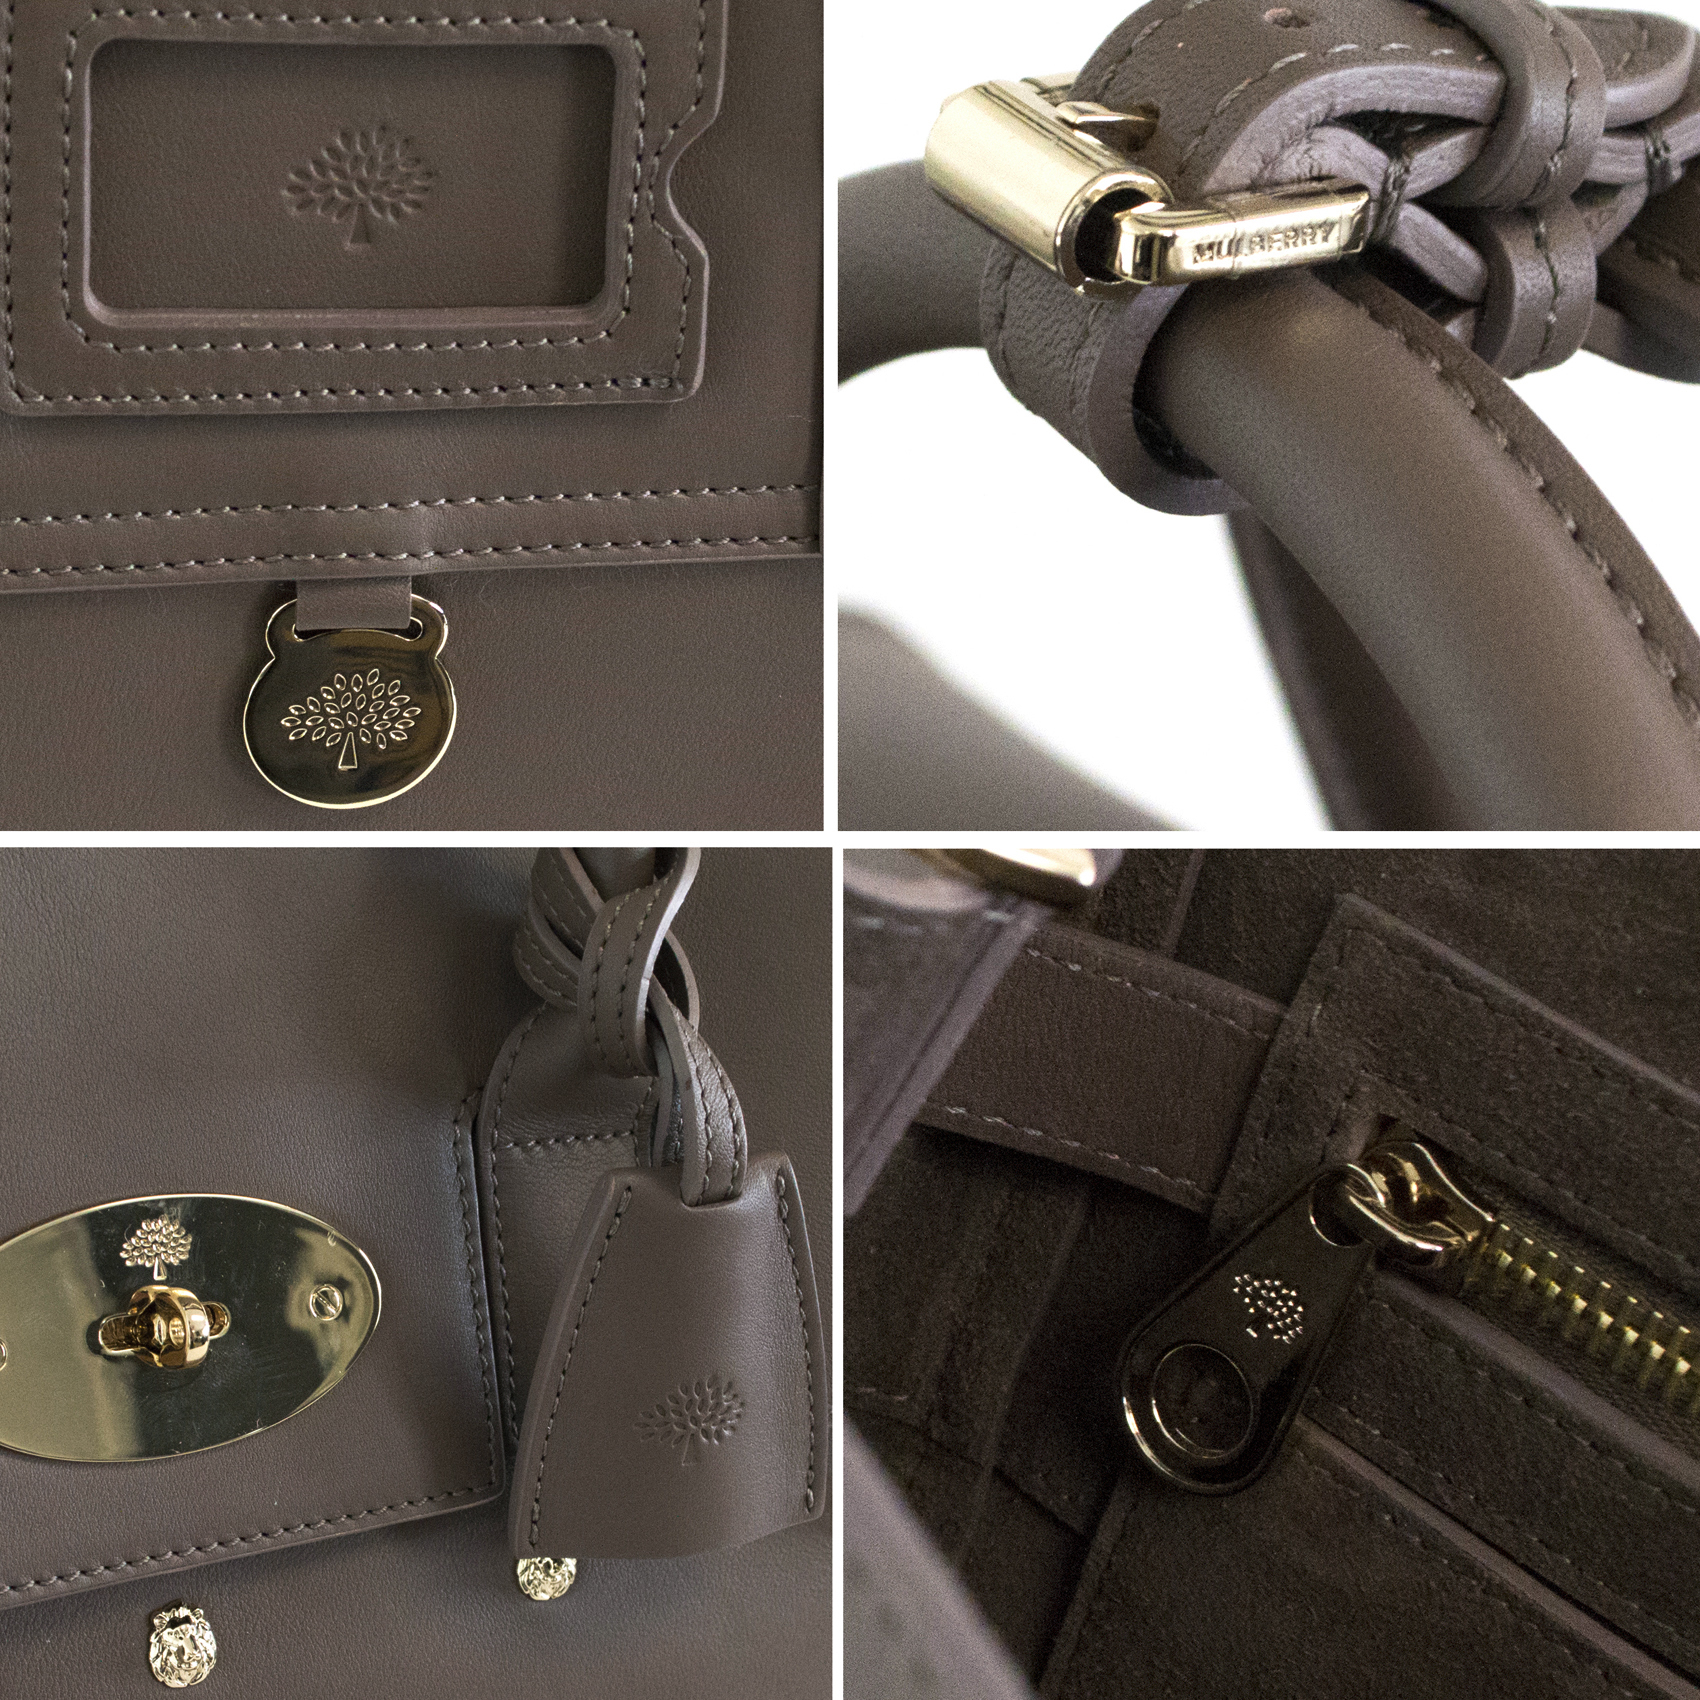 68b233973b Mulberry Cara Delevingne bag with lion rivets - Unique. 21. 12345678910